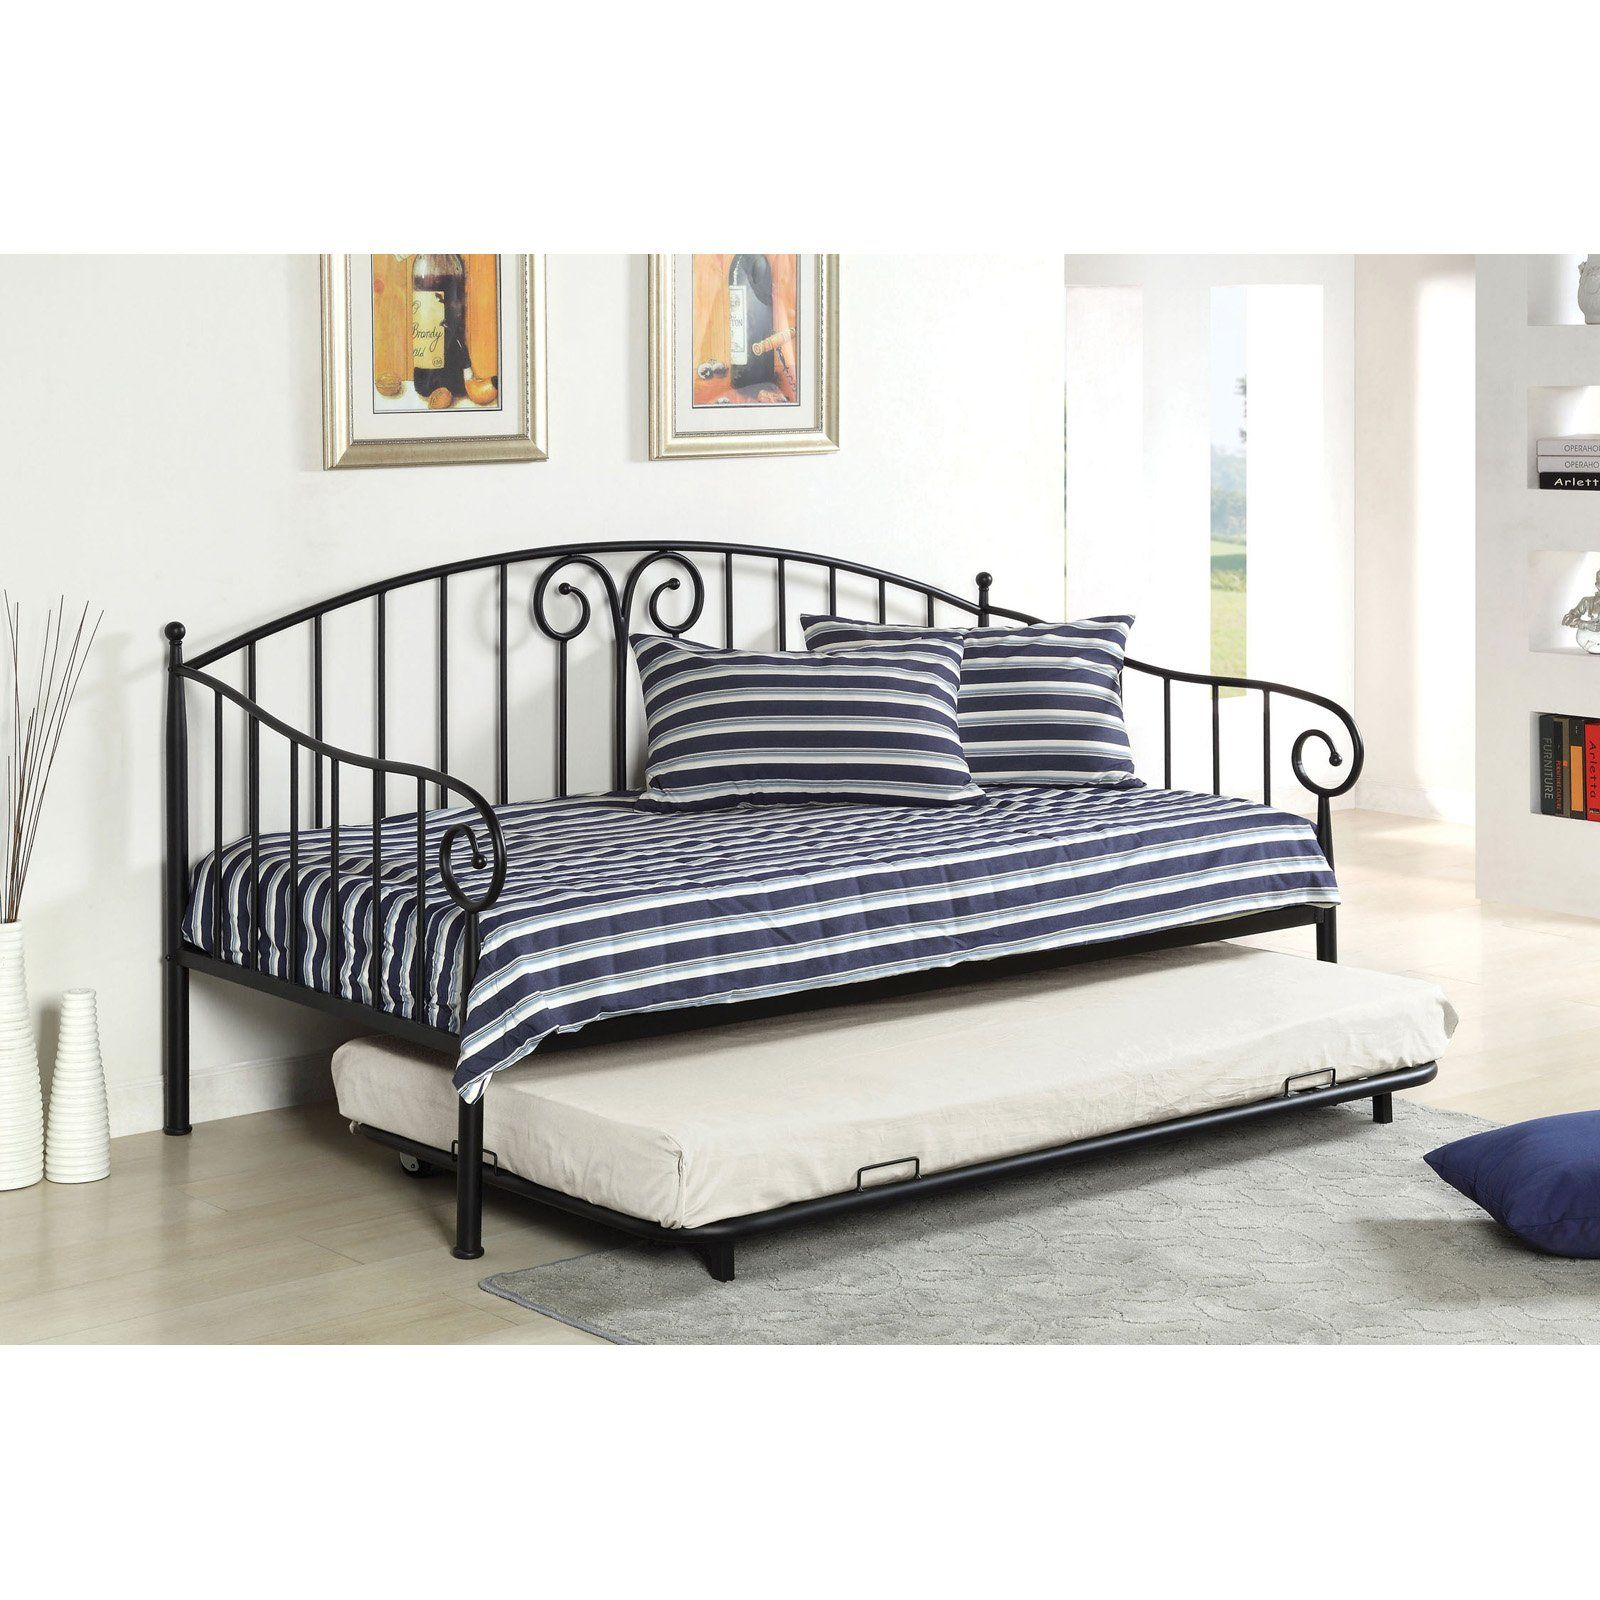 Representation of How to Transform Small Interior with Day Bed with